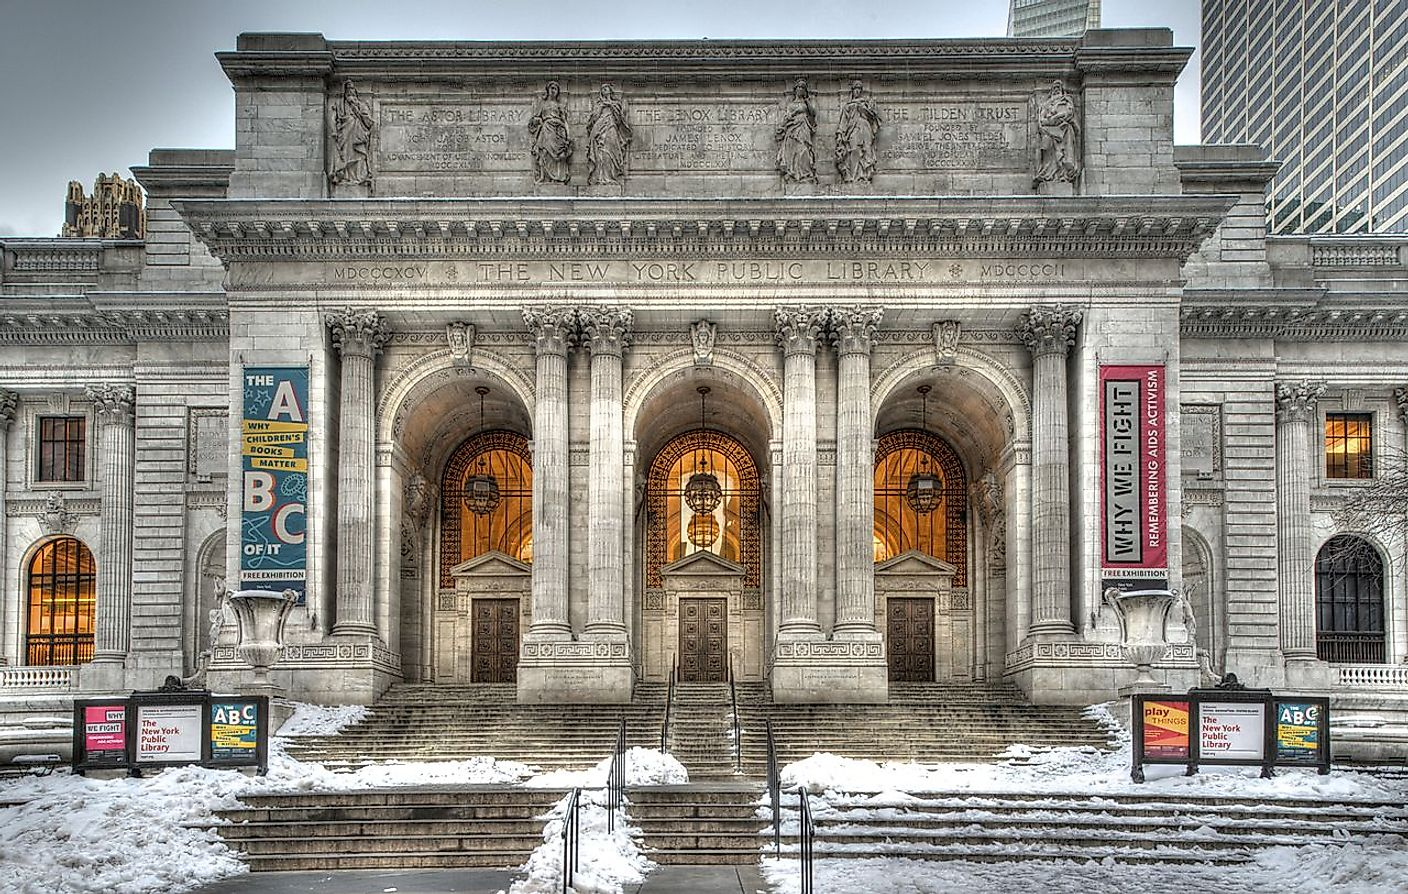 The New York Public Library. Image credit: Bestbudbrian/Wikimedia.org